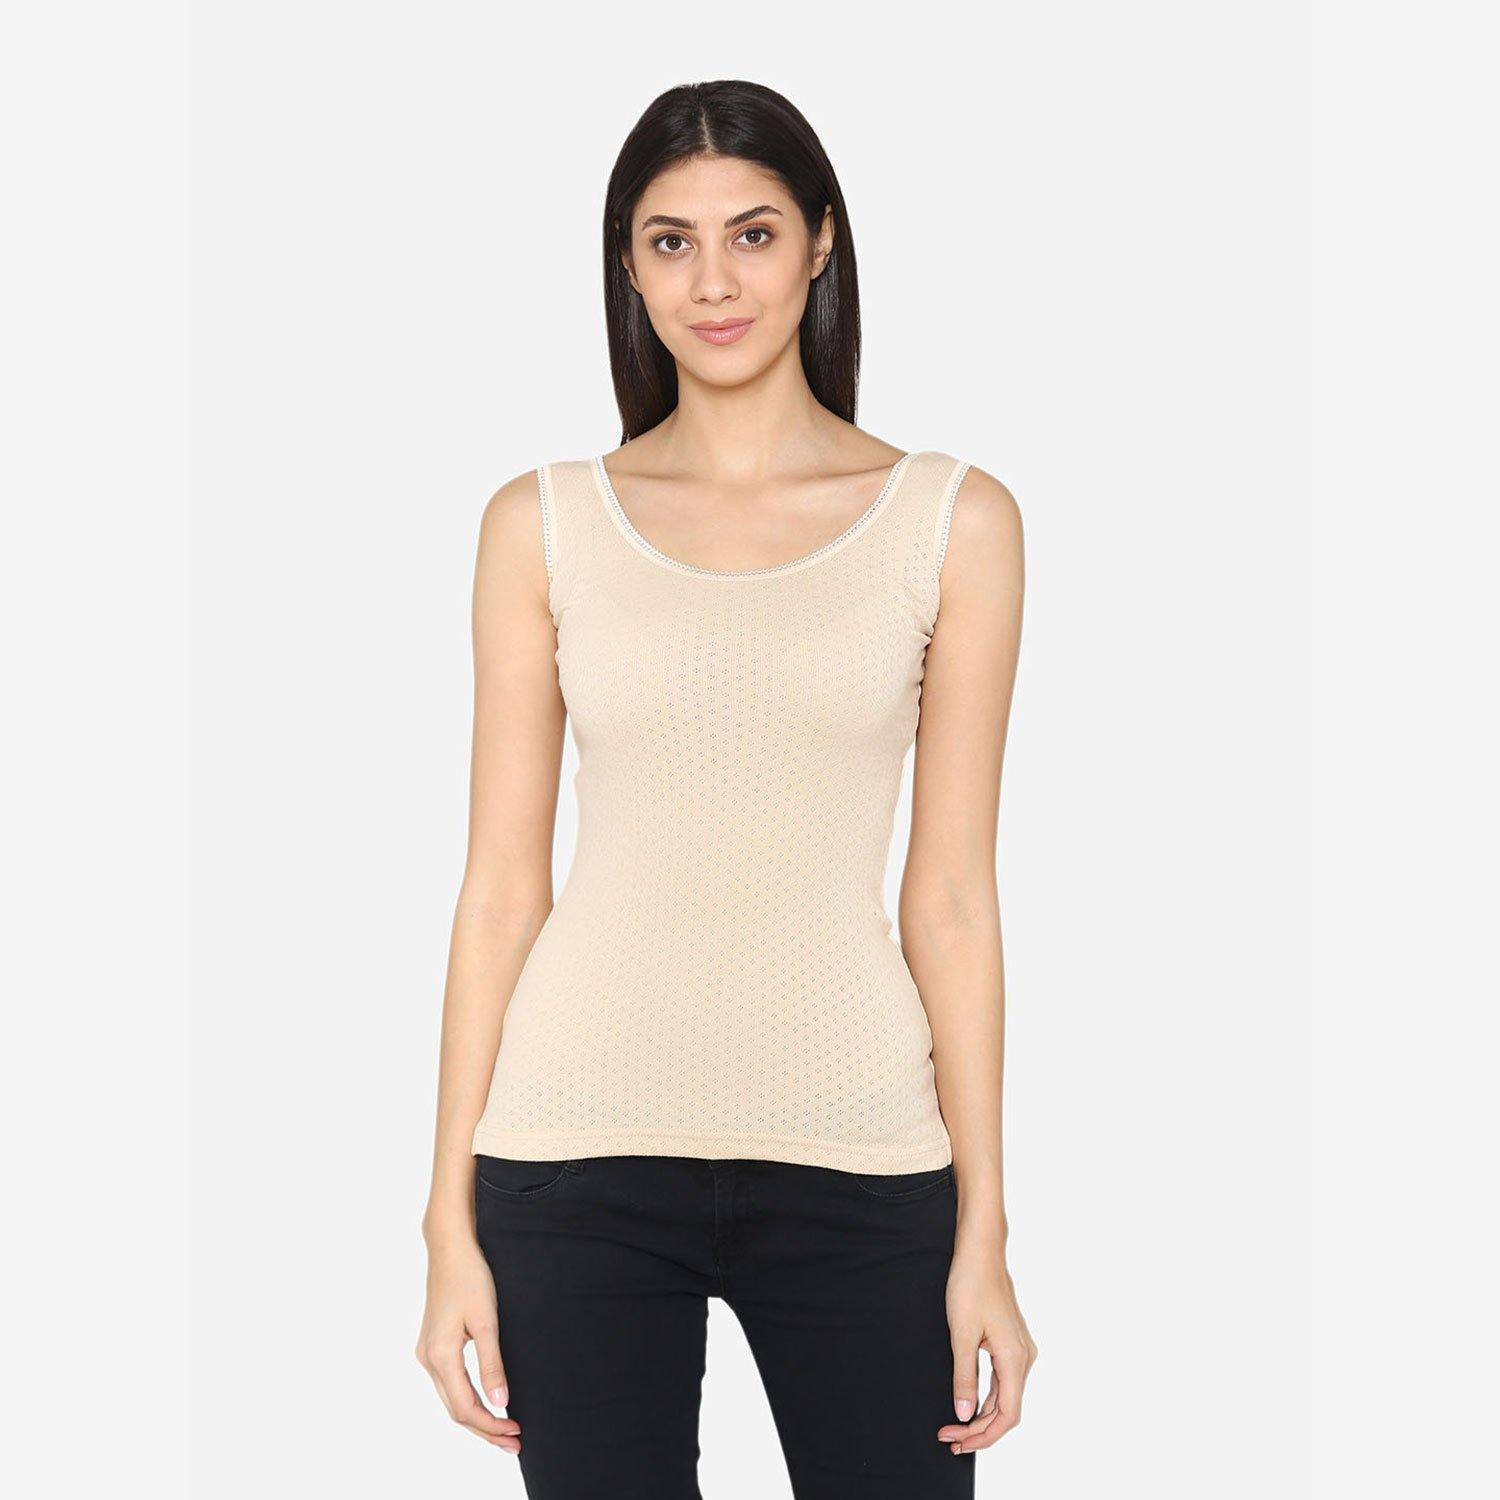 Vami Sleeve- less Thermal Top For Women in Skin Color